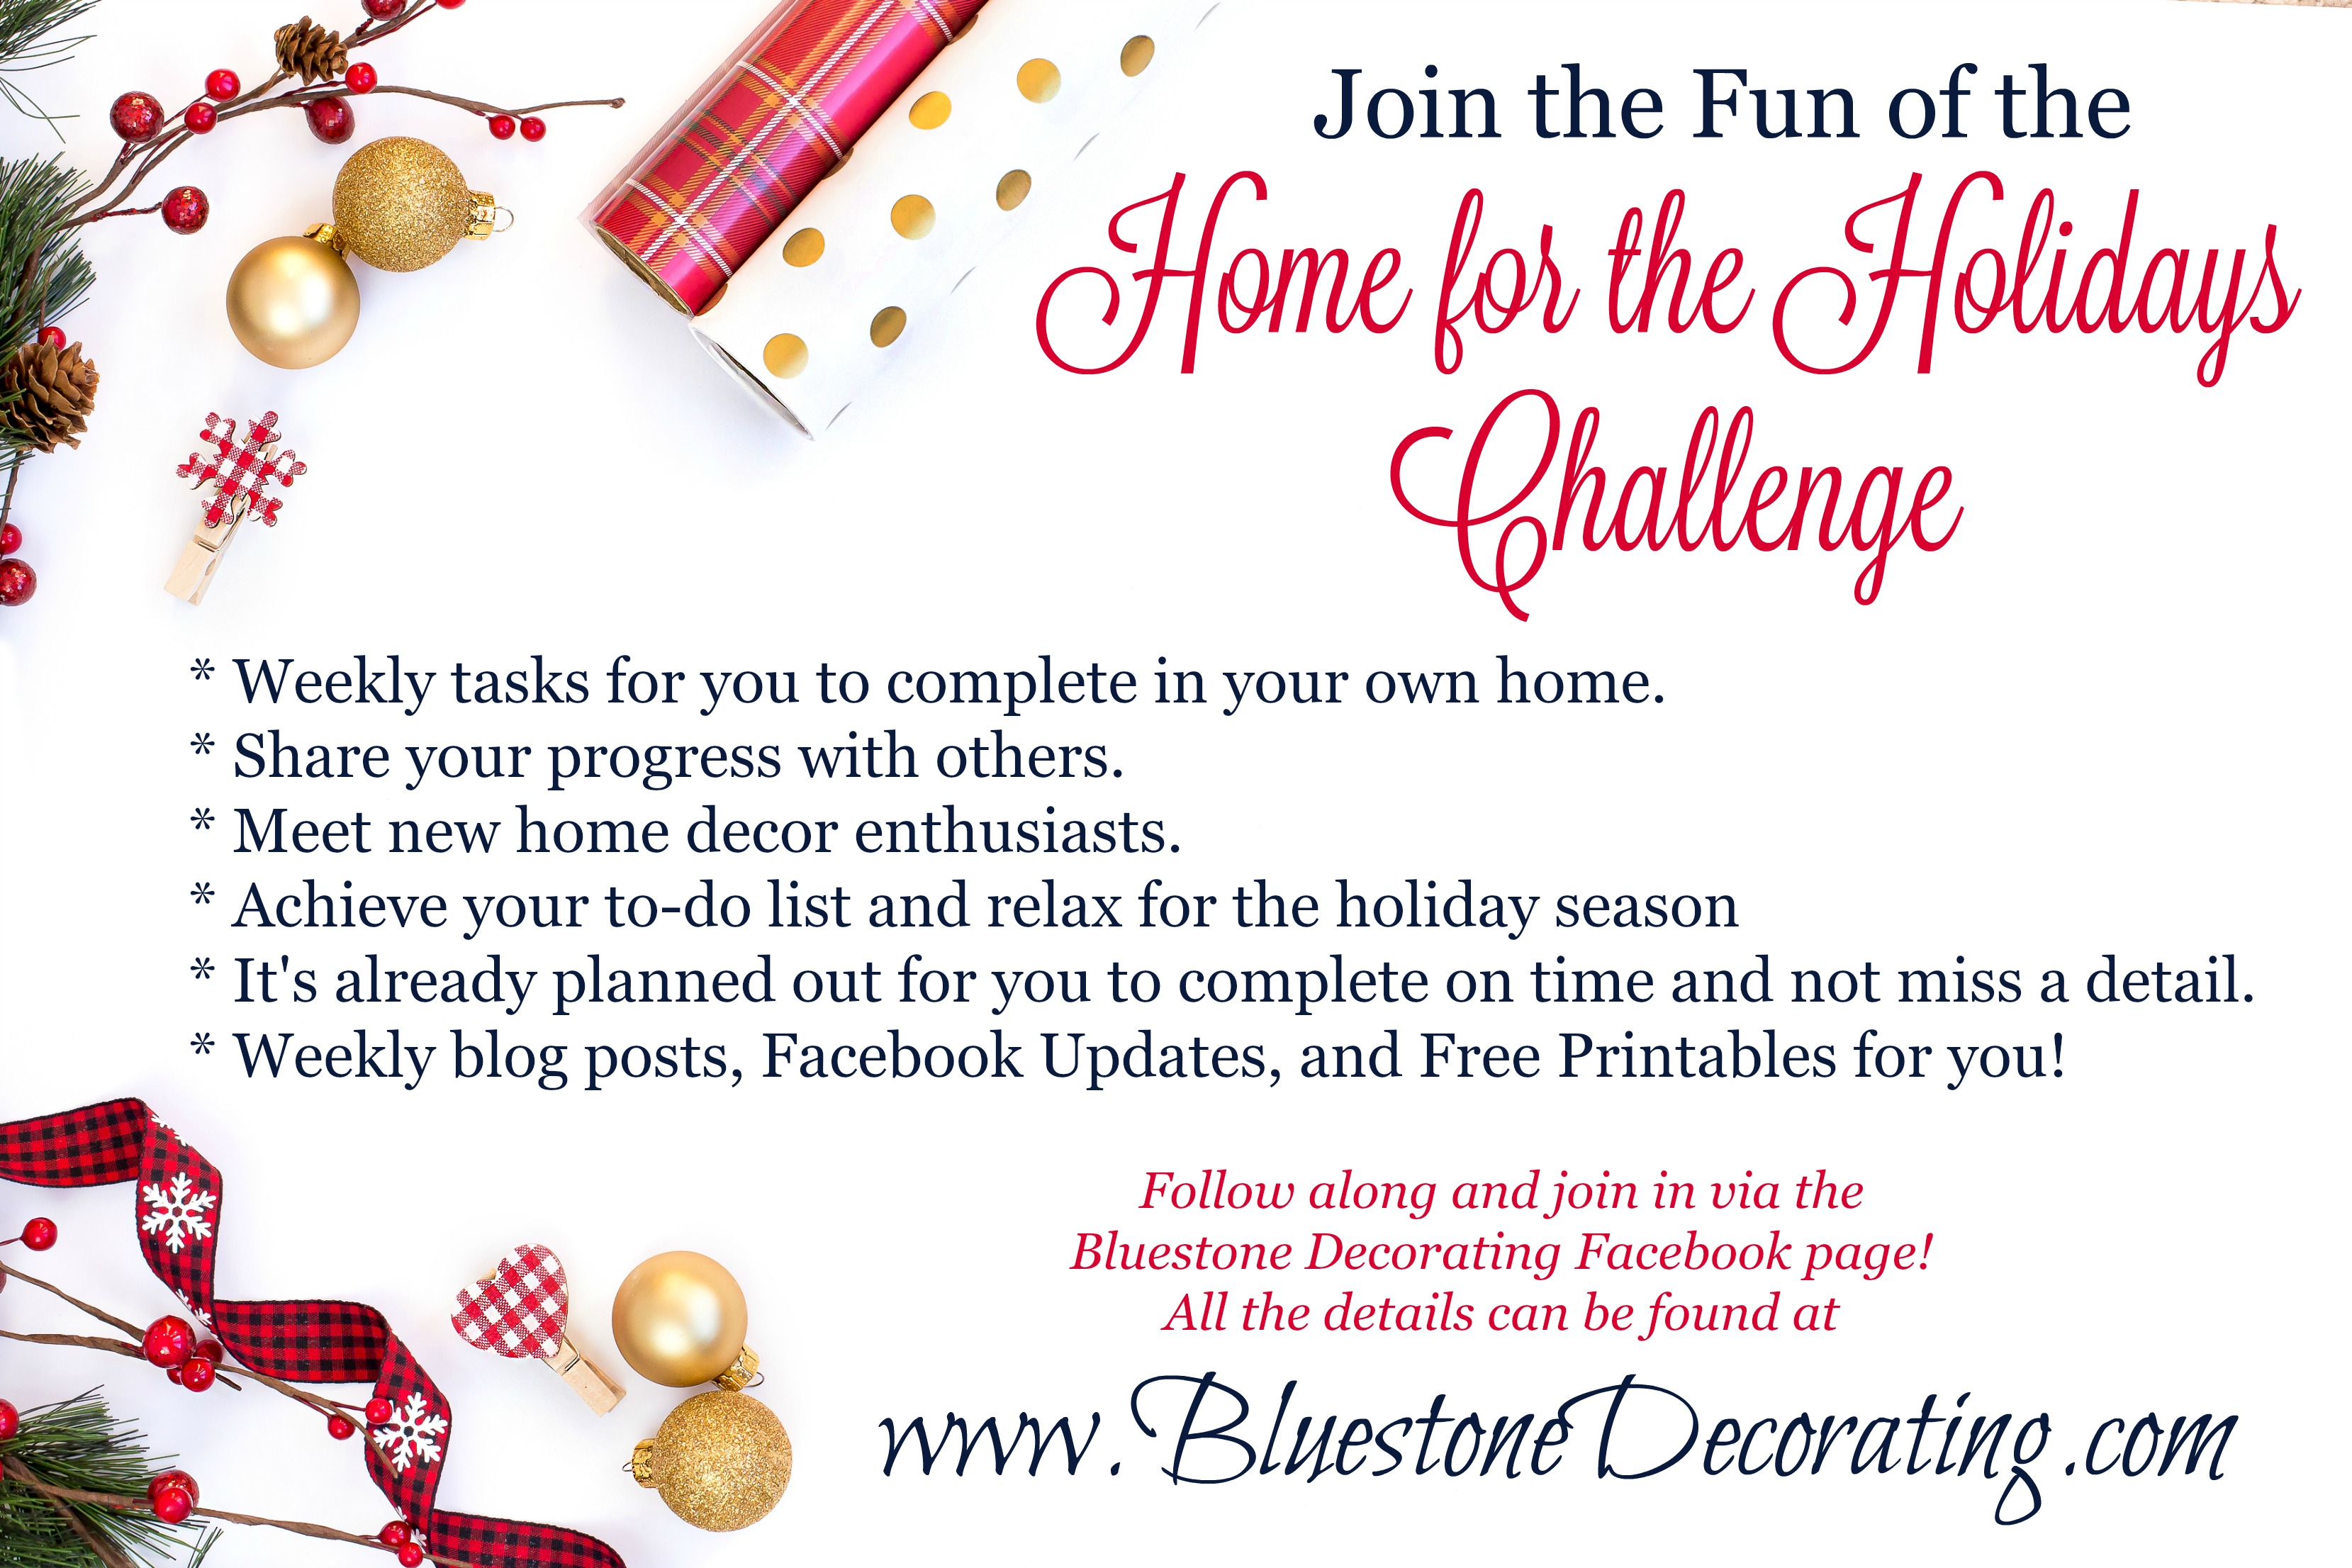 Home for the Holidays 2016 Challenge